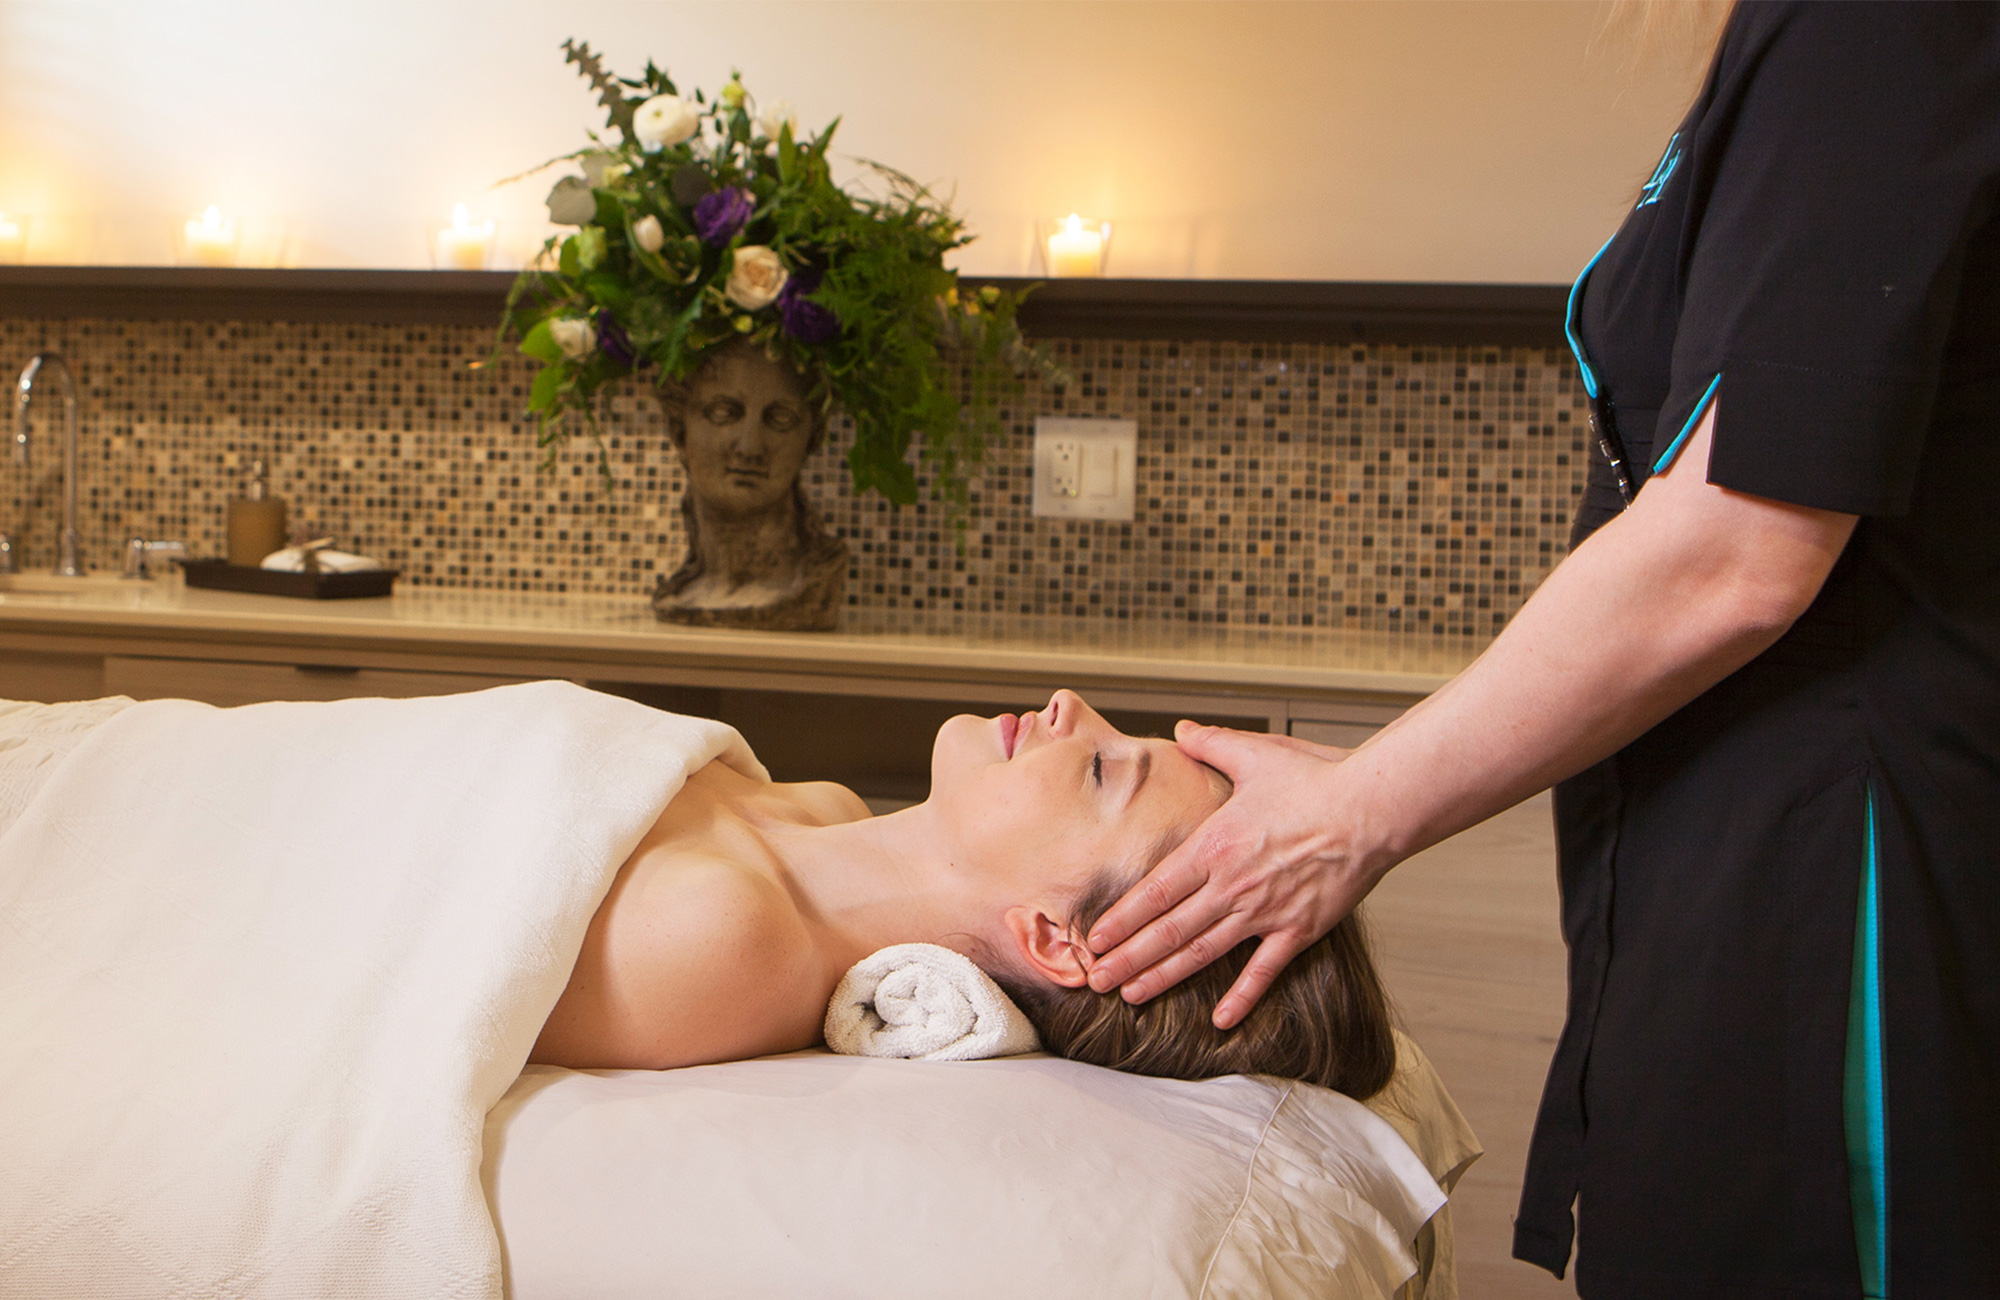 Woman receiving a relaxing facial massage by an esthetician